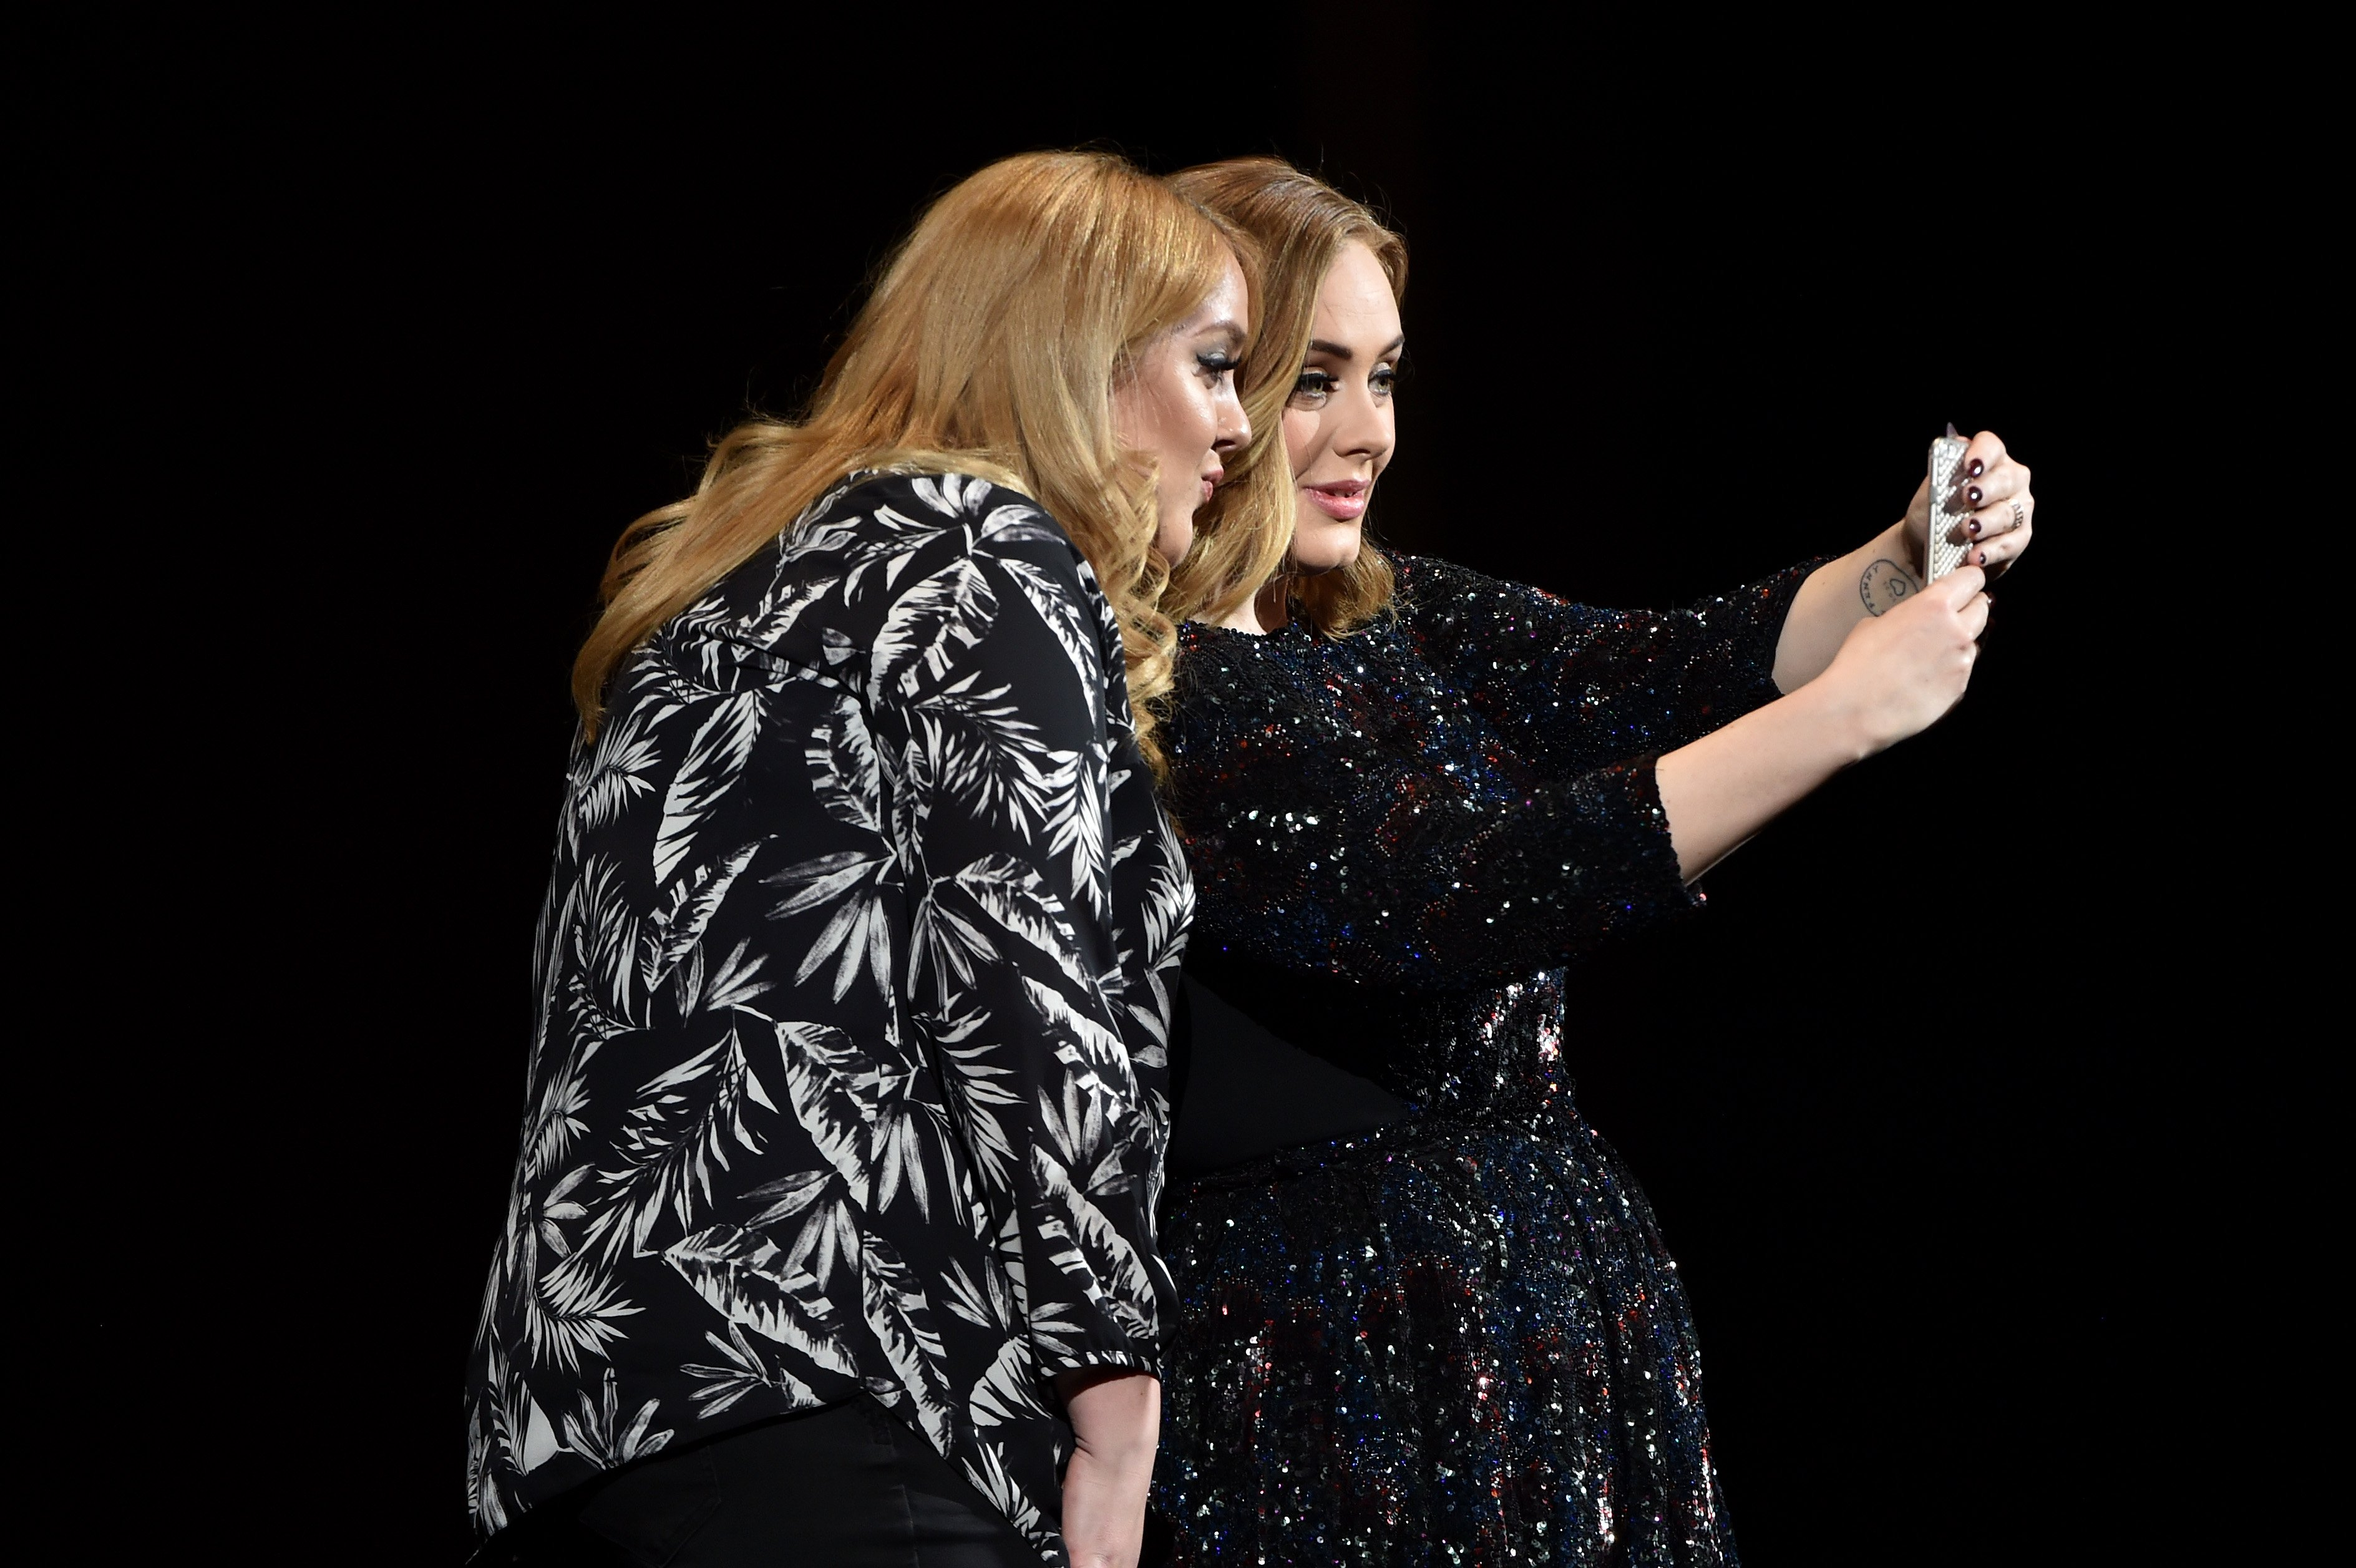 Adele performs at Genting Arena on March 29, 2016 in Birmingham, England.